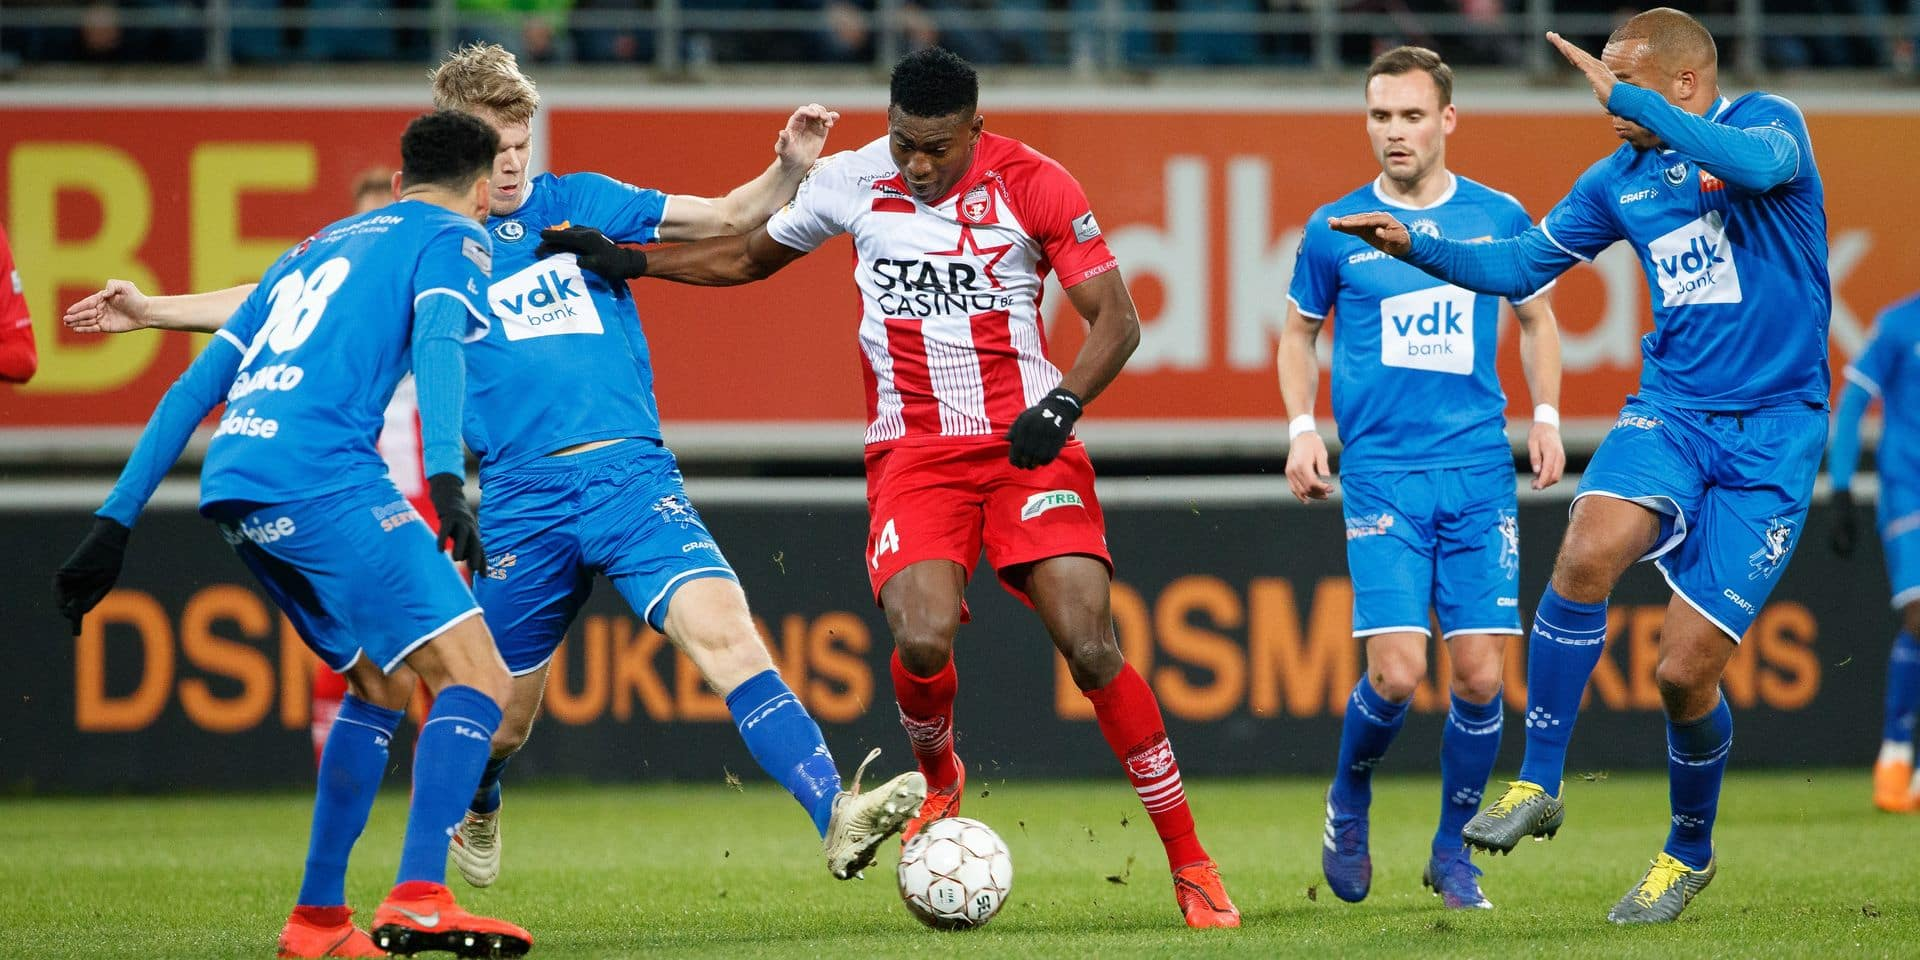 Gent's Sigurd Rosted and Mouscron's Taiwo Awoniyi fight for the ball during a soccer match between KAA Gent and Royal Excel Mouscron, Sunday 10 February 2019 in Gent, on day 25th of the 'Jupiler Pro League' Belgian soccer championship season 2018-2019. BELGA PHOTO KURT DESPLENTER